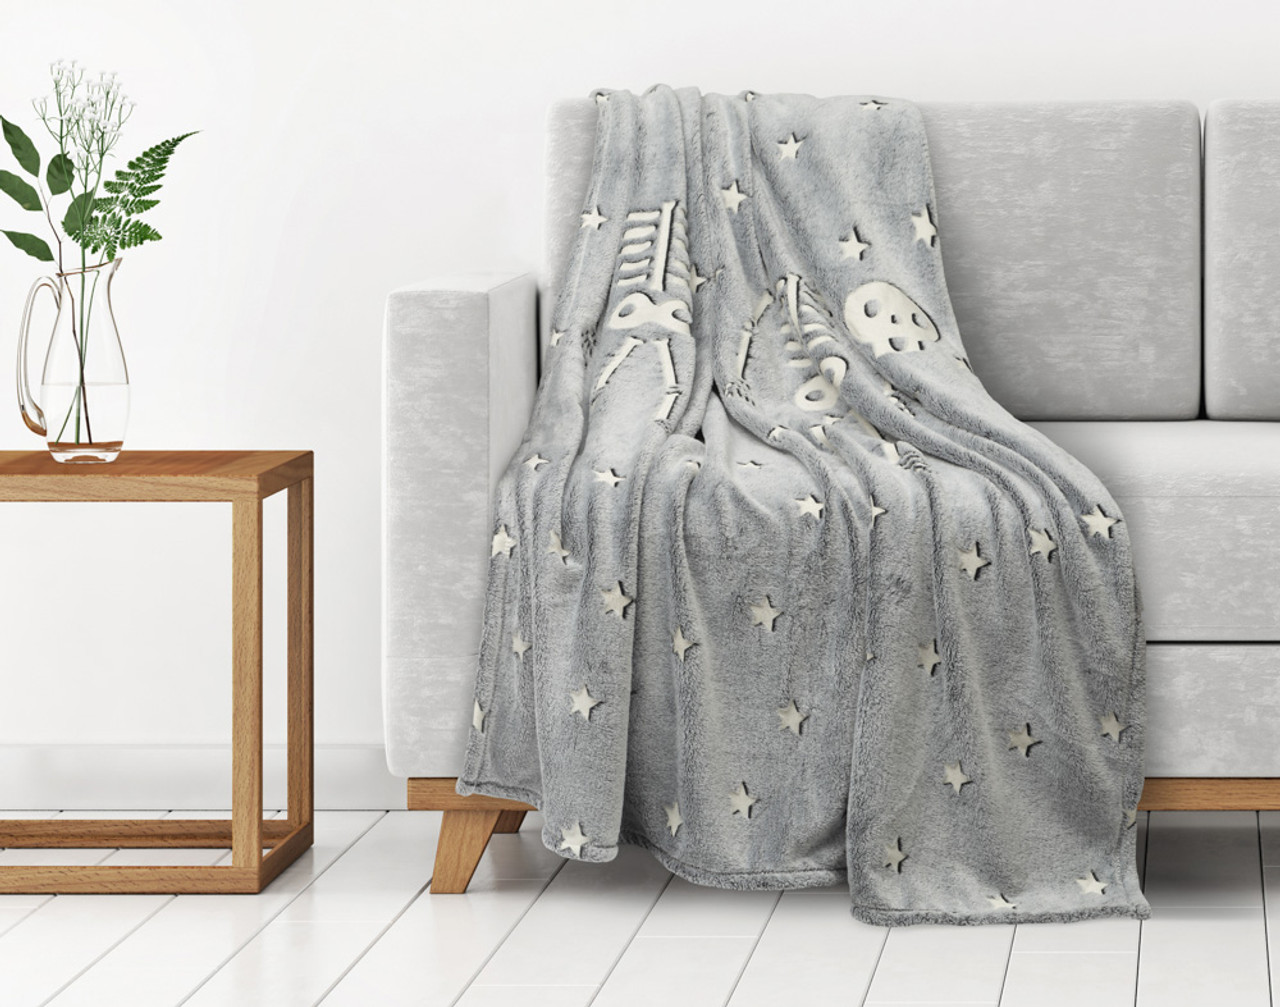 Skeleton Glow In The Dark Fleece Throw draped over a couch.